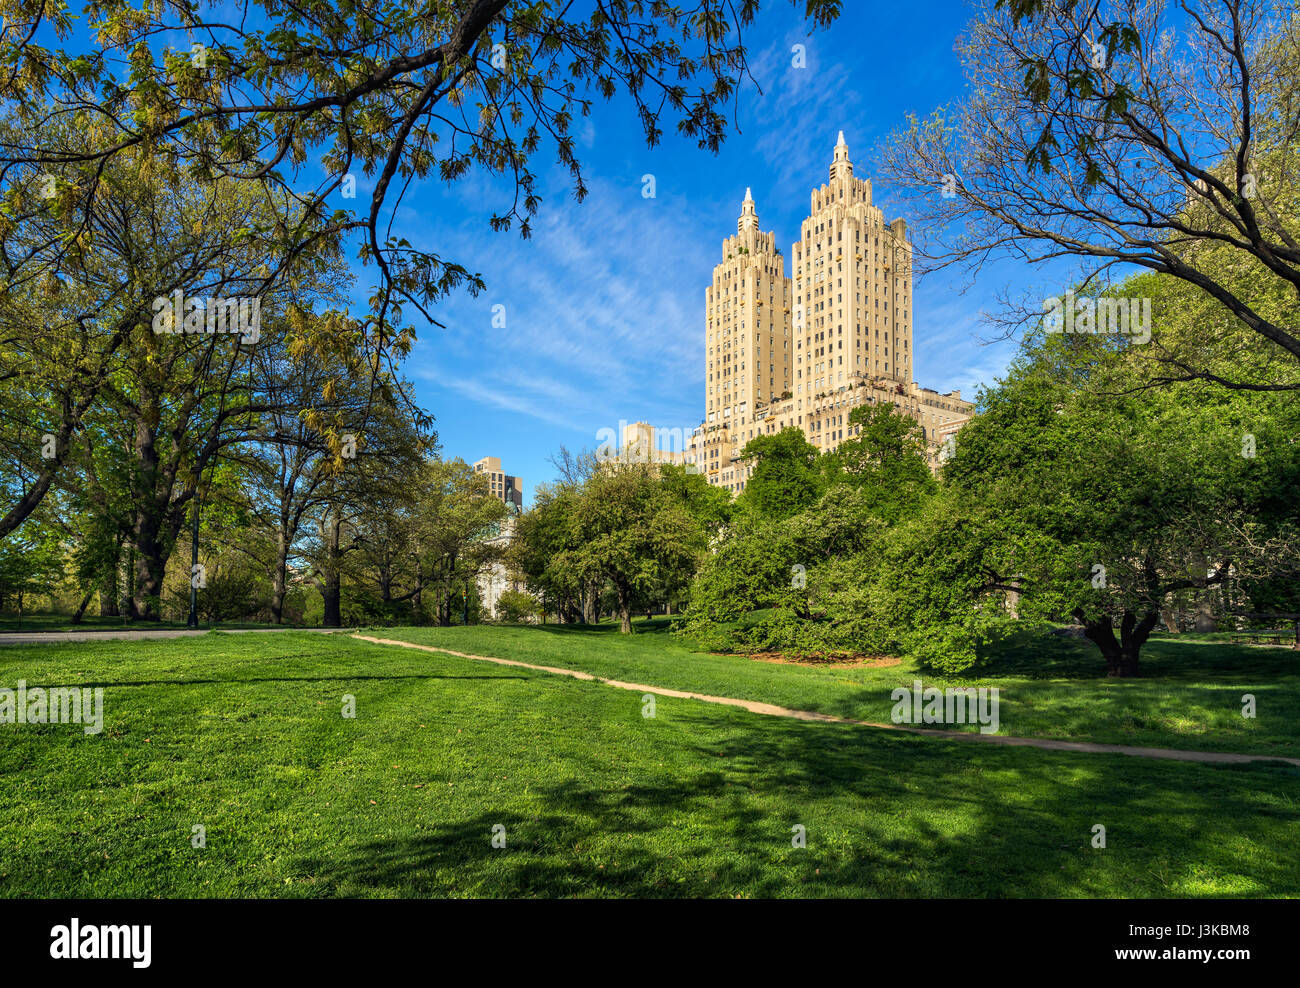 Central Park West Sommermorgen mit Art-Déco-Hochhaus bauen. Upper West Side, Manhattan, New York City Stockbild